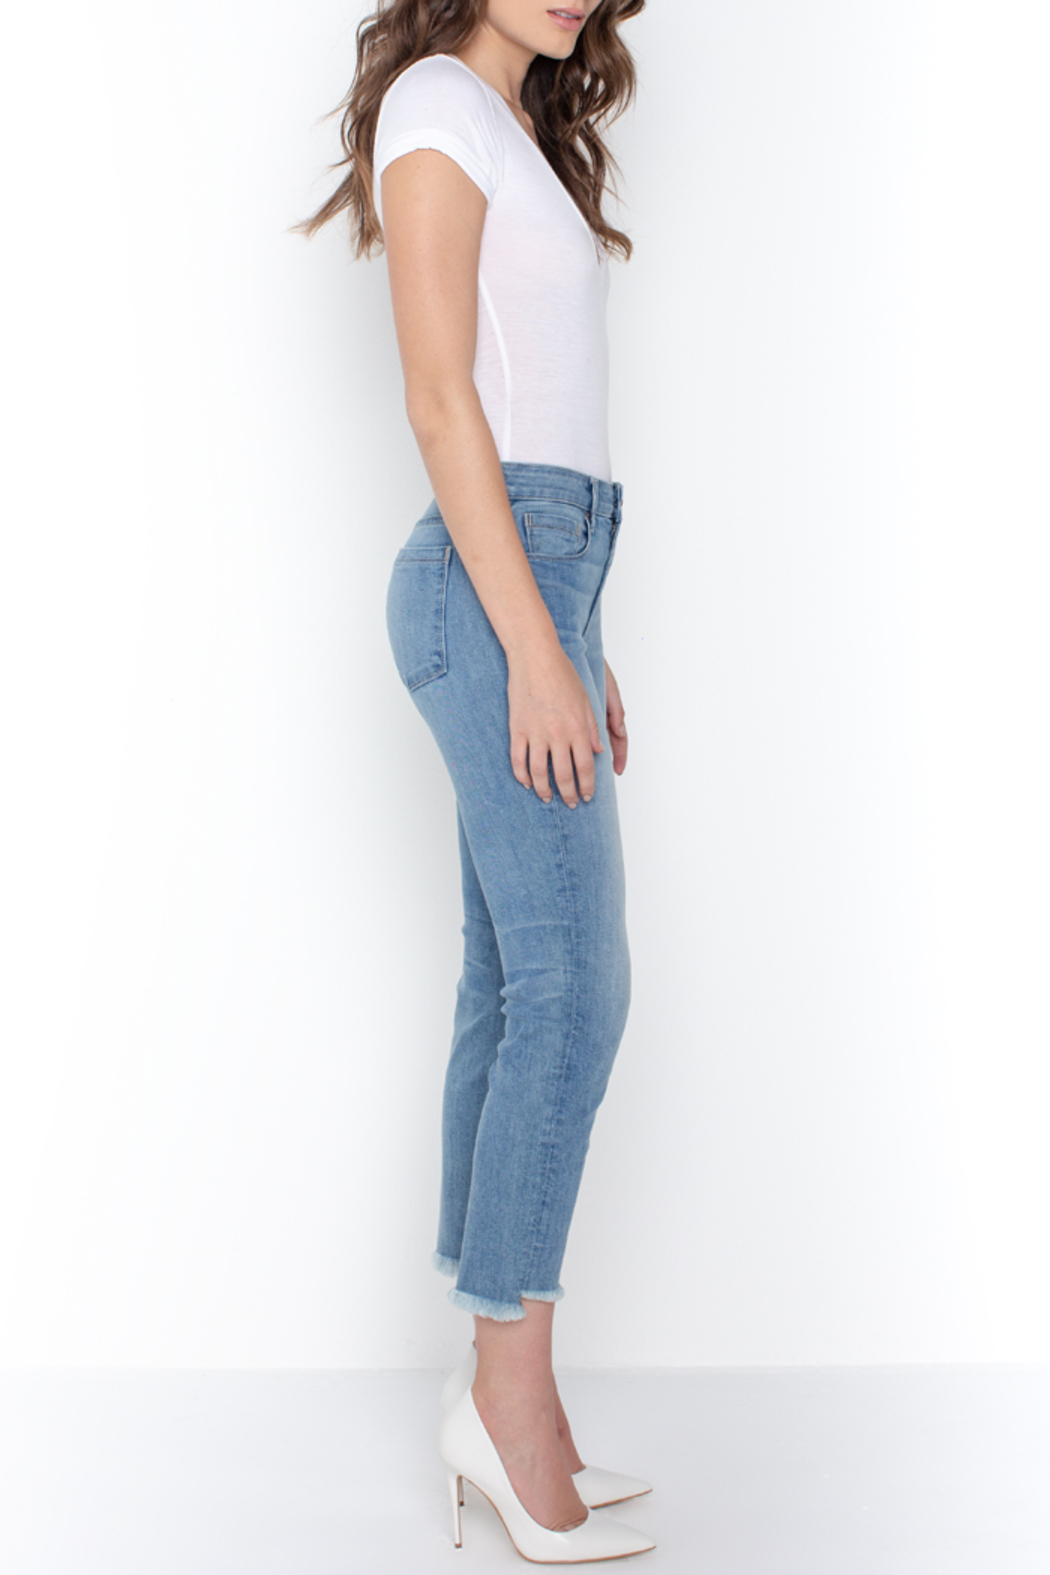 Parker Smith  HIGH-LOW STRAIGHT JEAN - Side Cropped Image